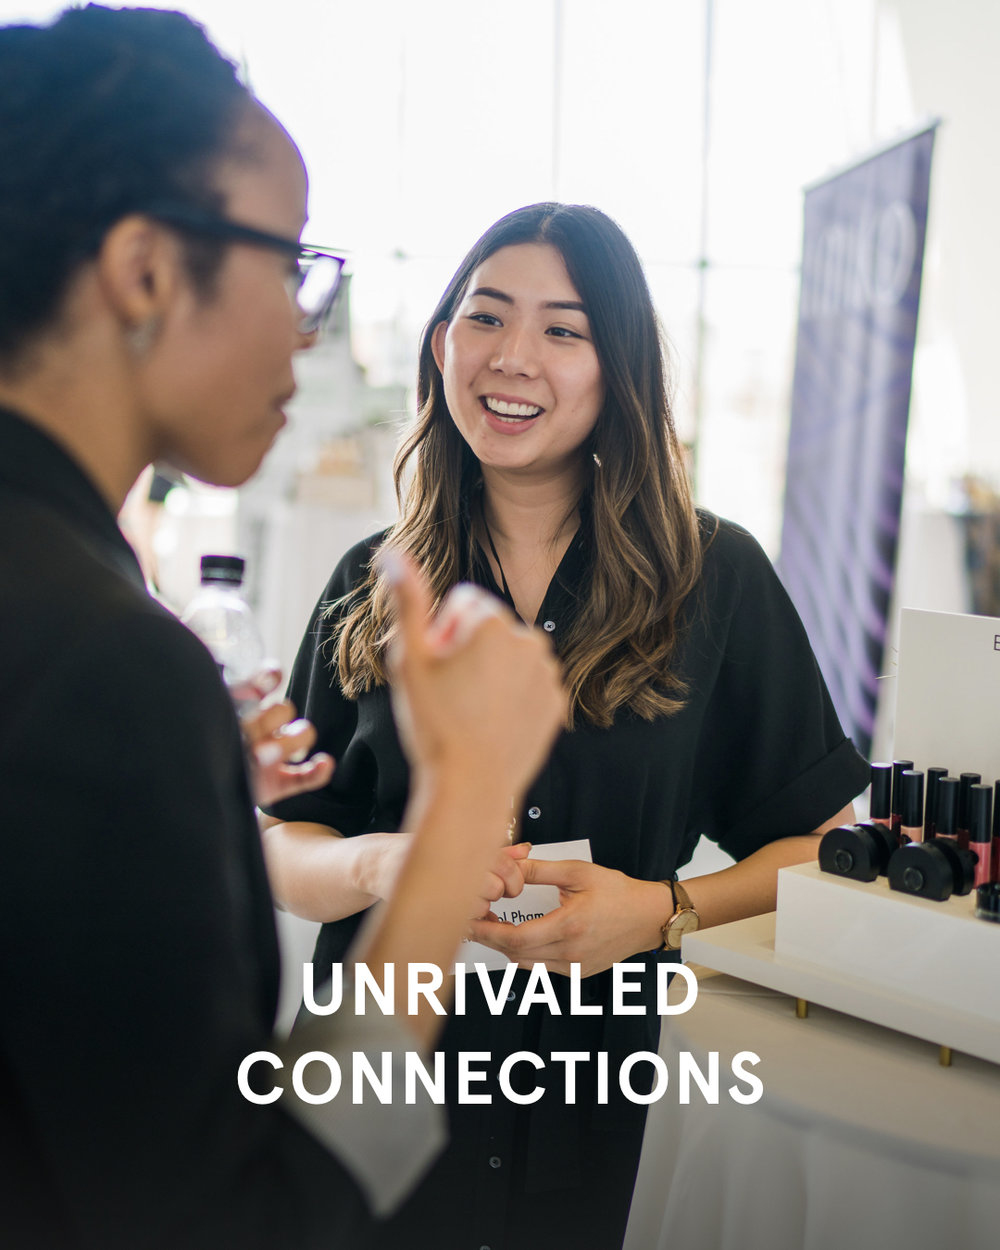 - Connect with the biggest names in the industry on the show floor.